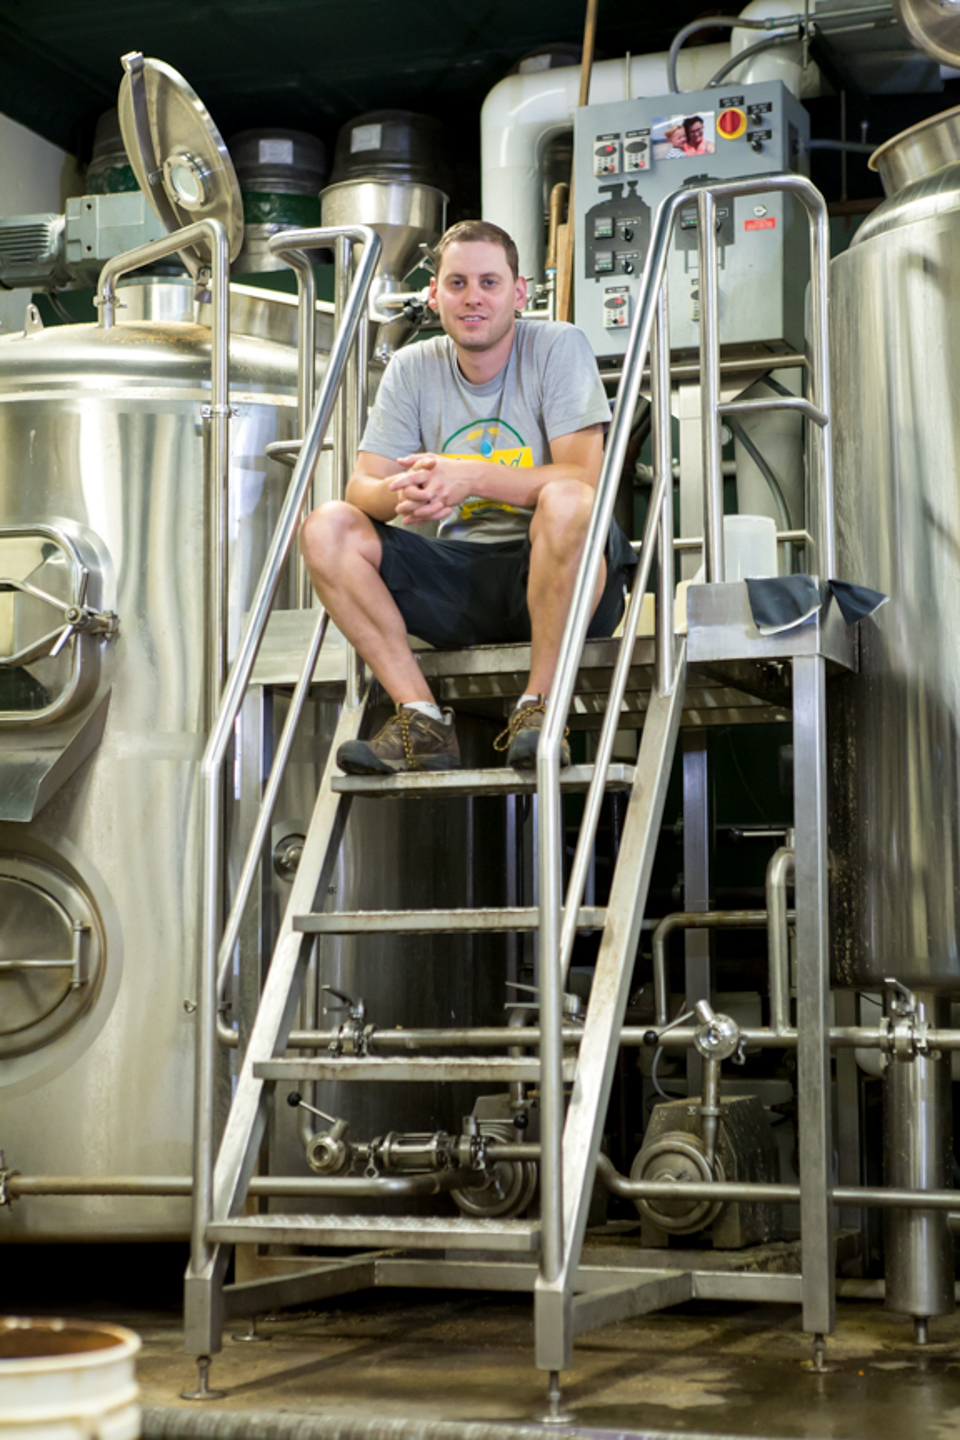 small-business-photography-orlando-florida-brewery-magazine-brevard-nc-16.jpg